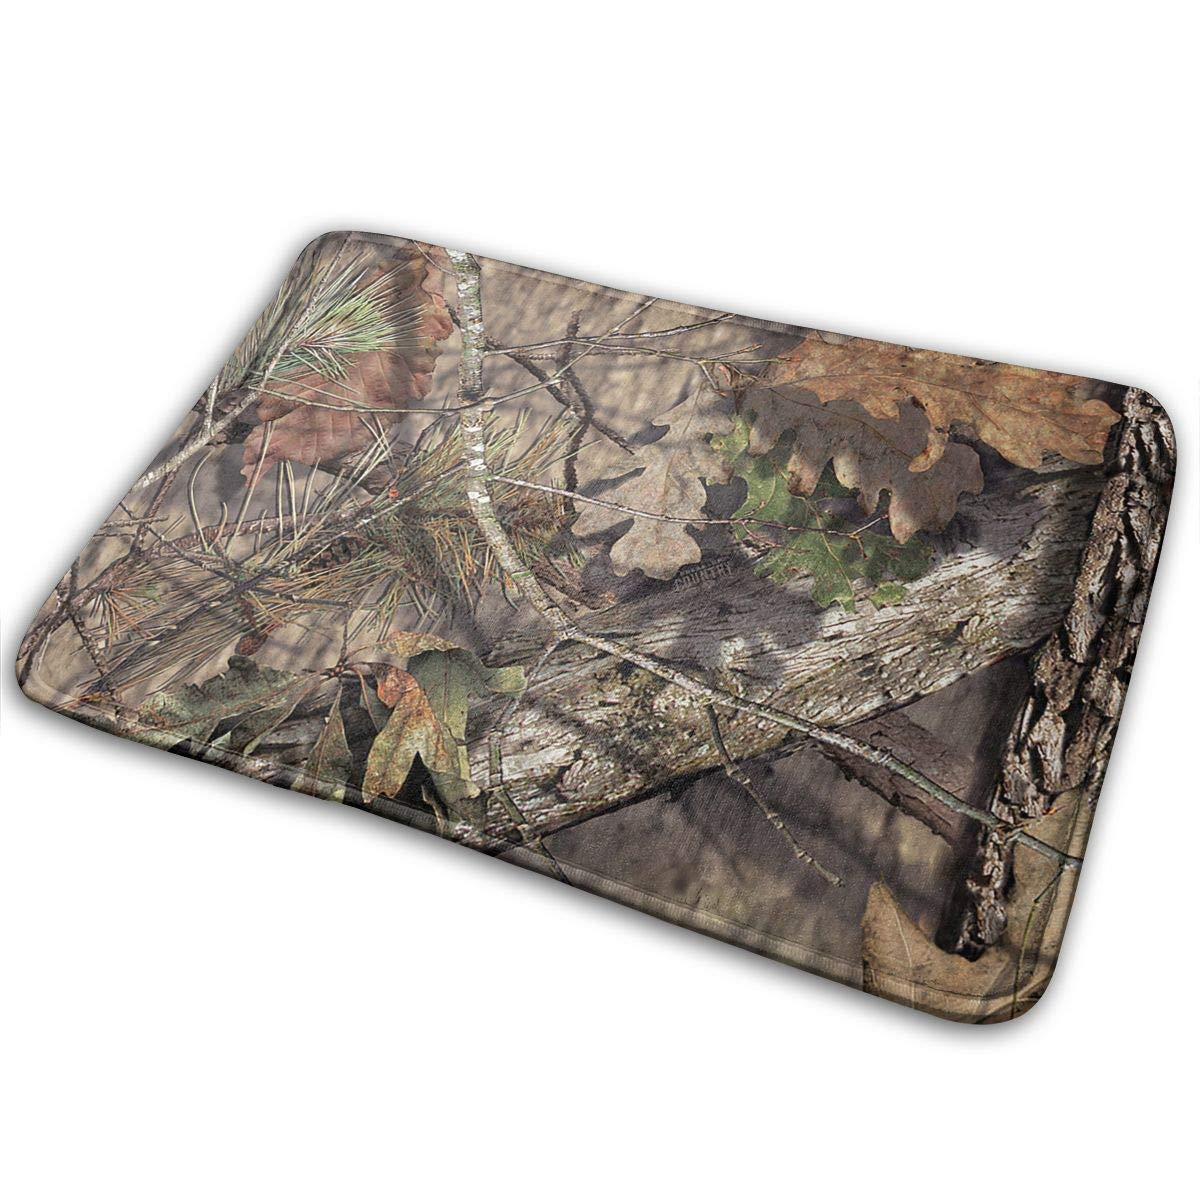 Mossy Oak Camo,Non Slip Machine-Washable Door Mat Home Decor Rug Floor Mat Thicken Playmat Multi-Purpose Floorcover 31.5(L) X 19.7(W) Inch